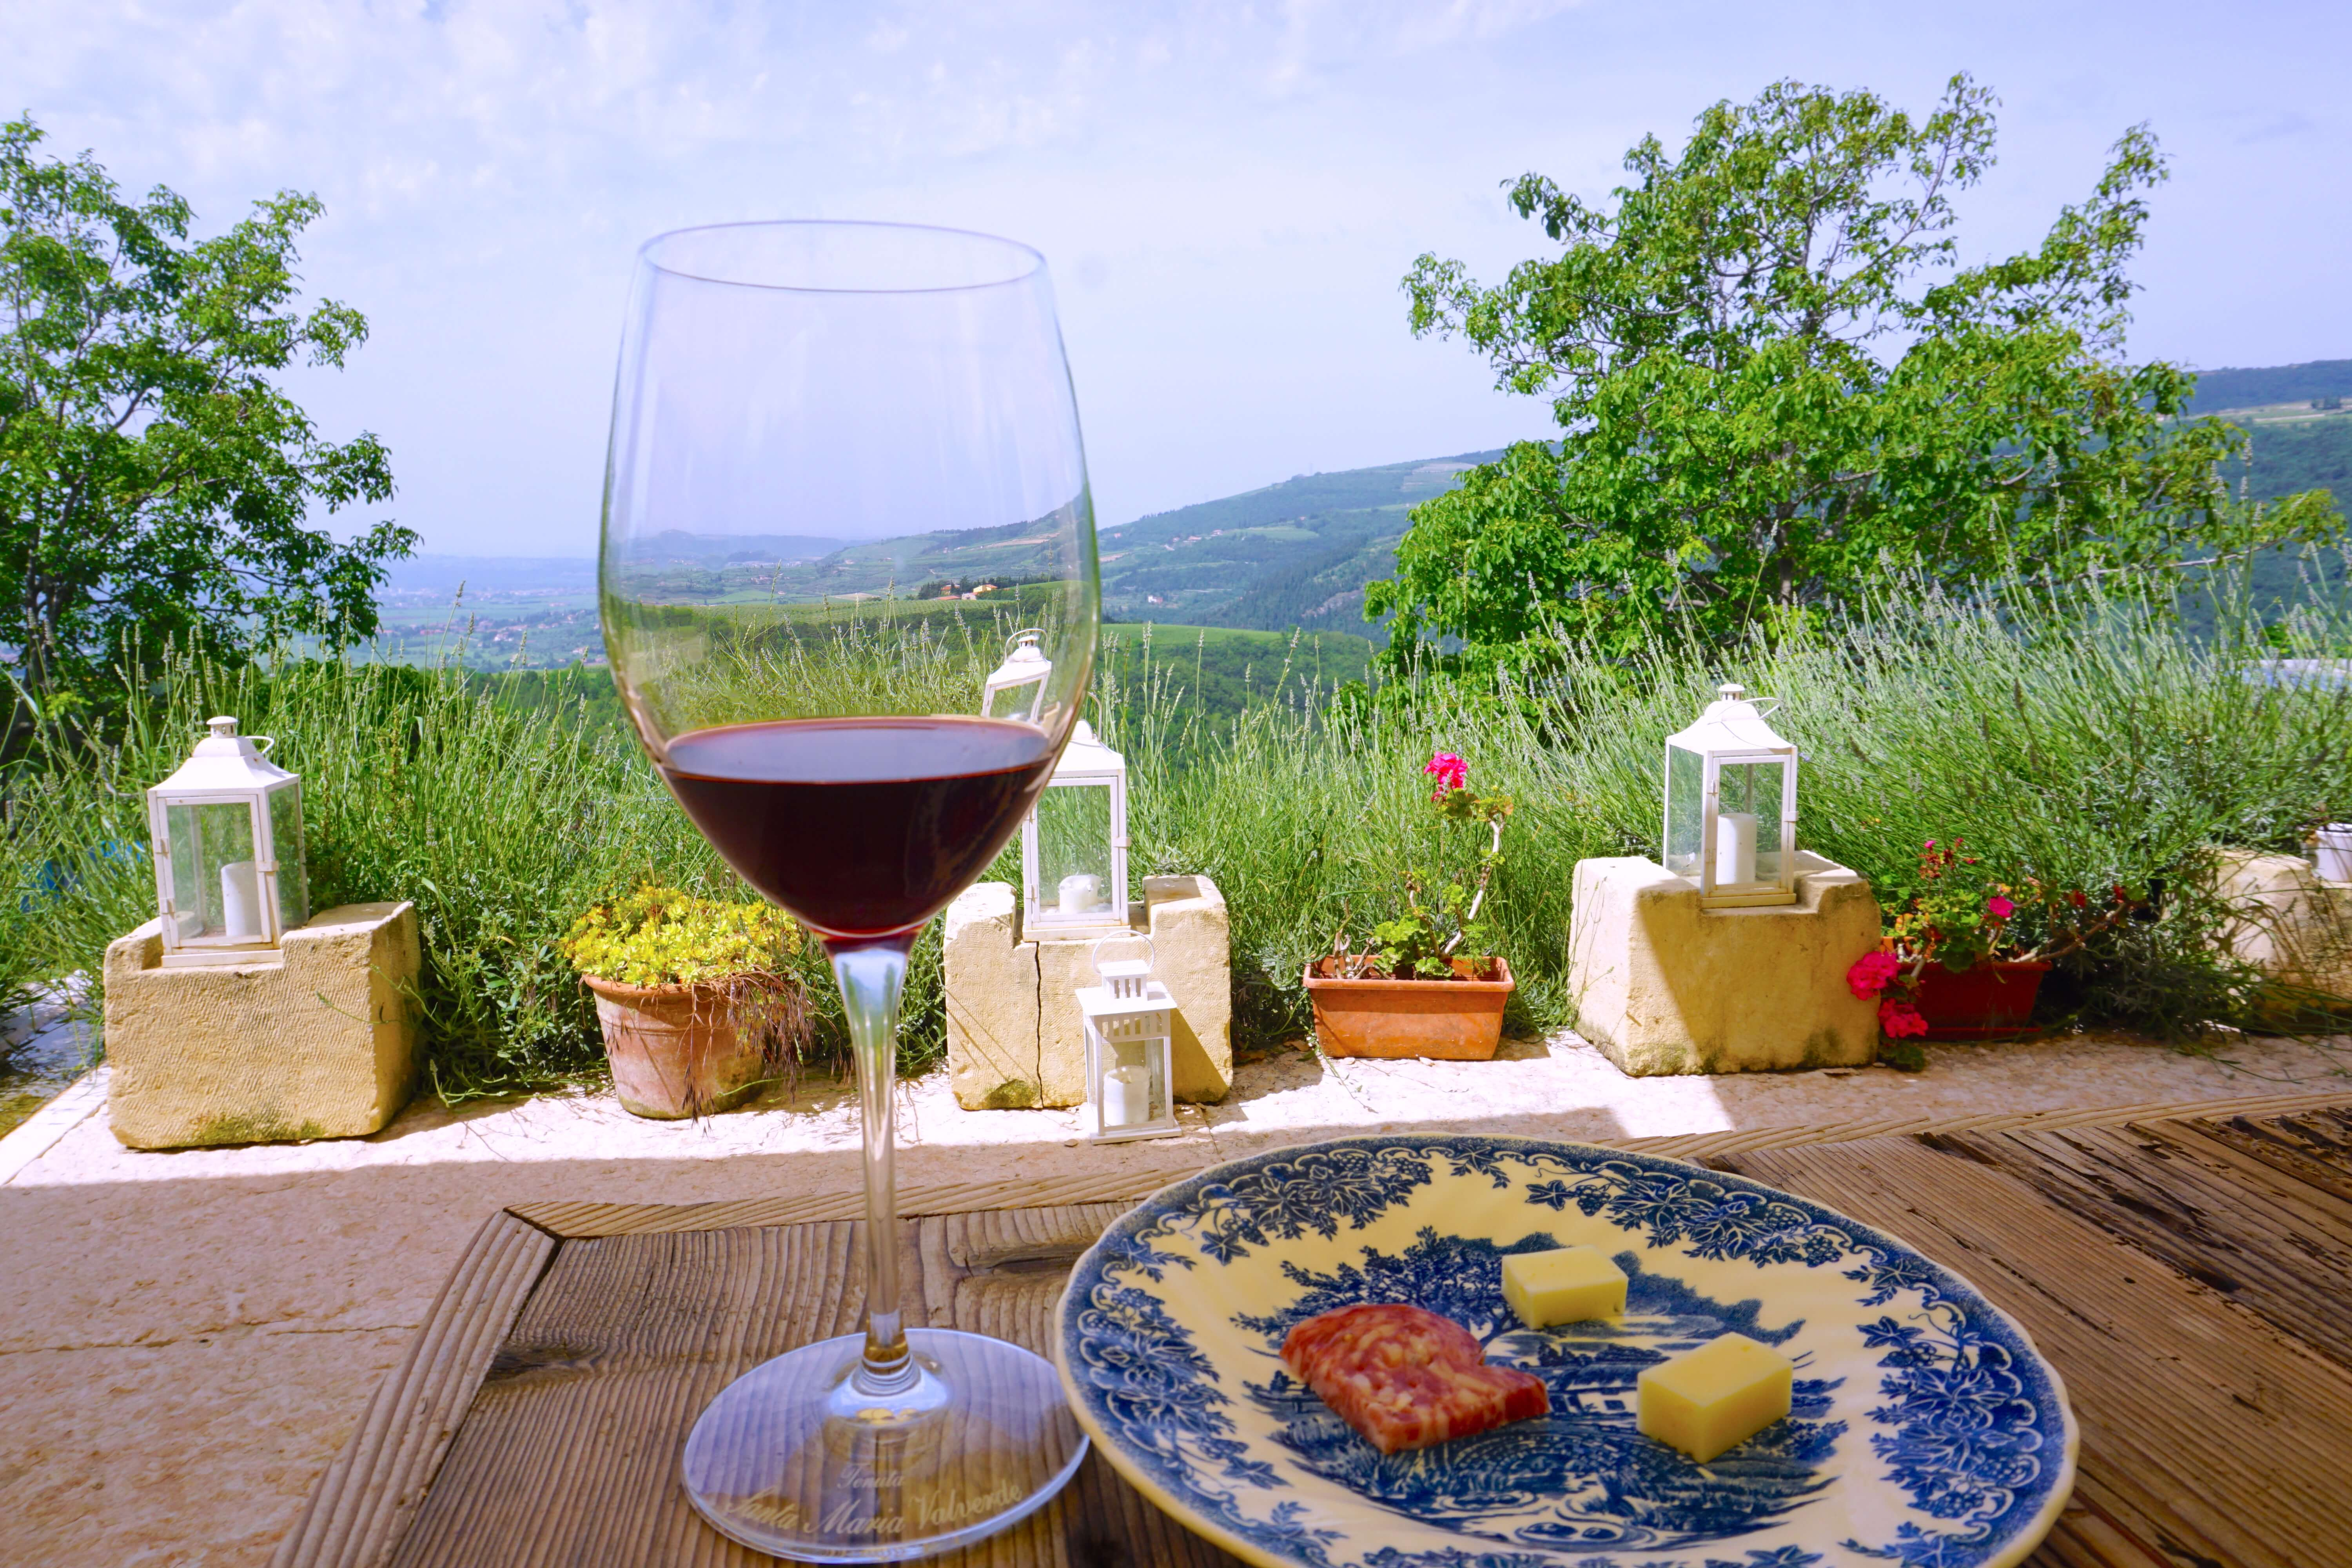 A glass of red Valpolicella wine and a plate of delicious local Italian salami and cheese